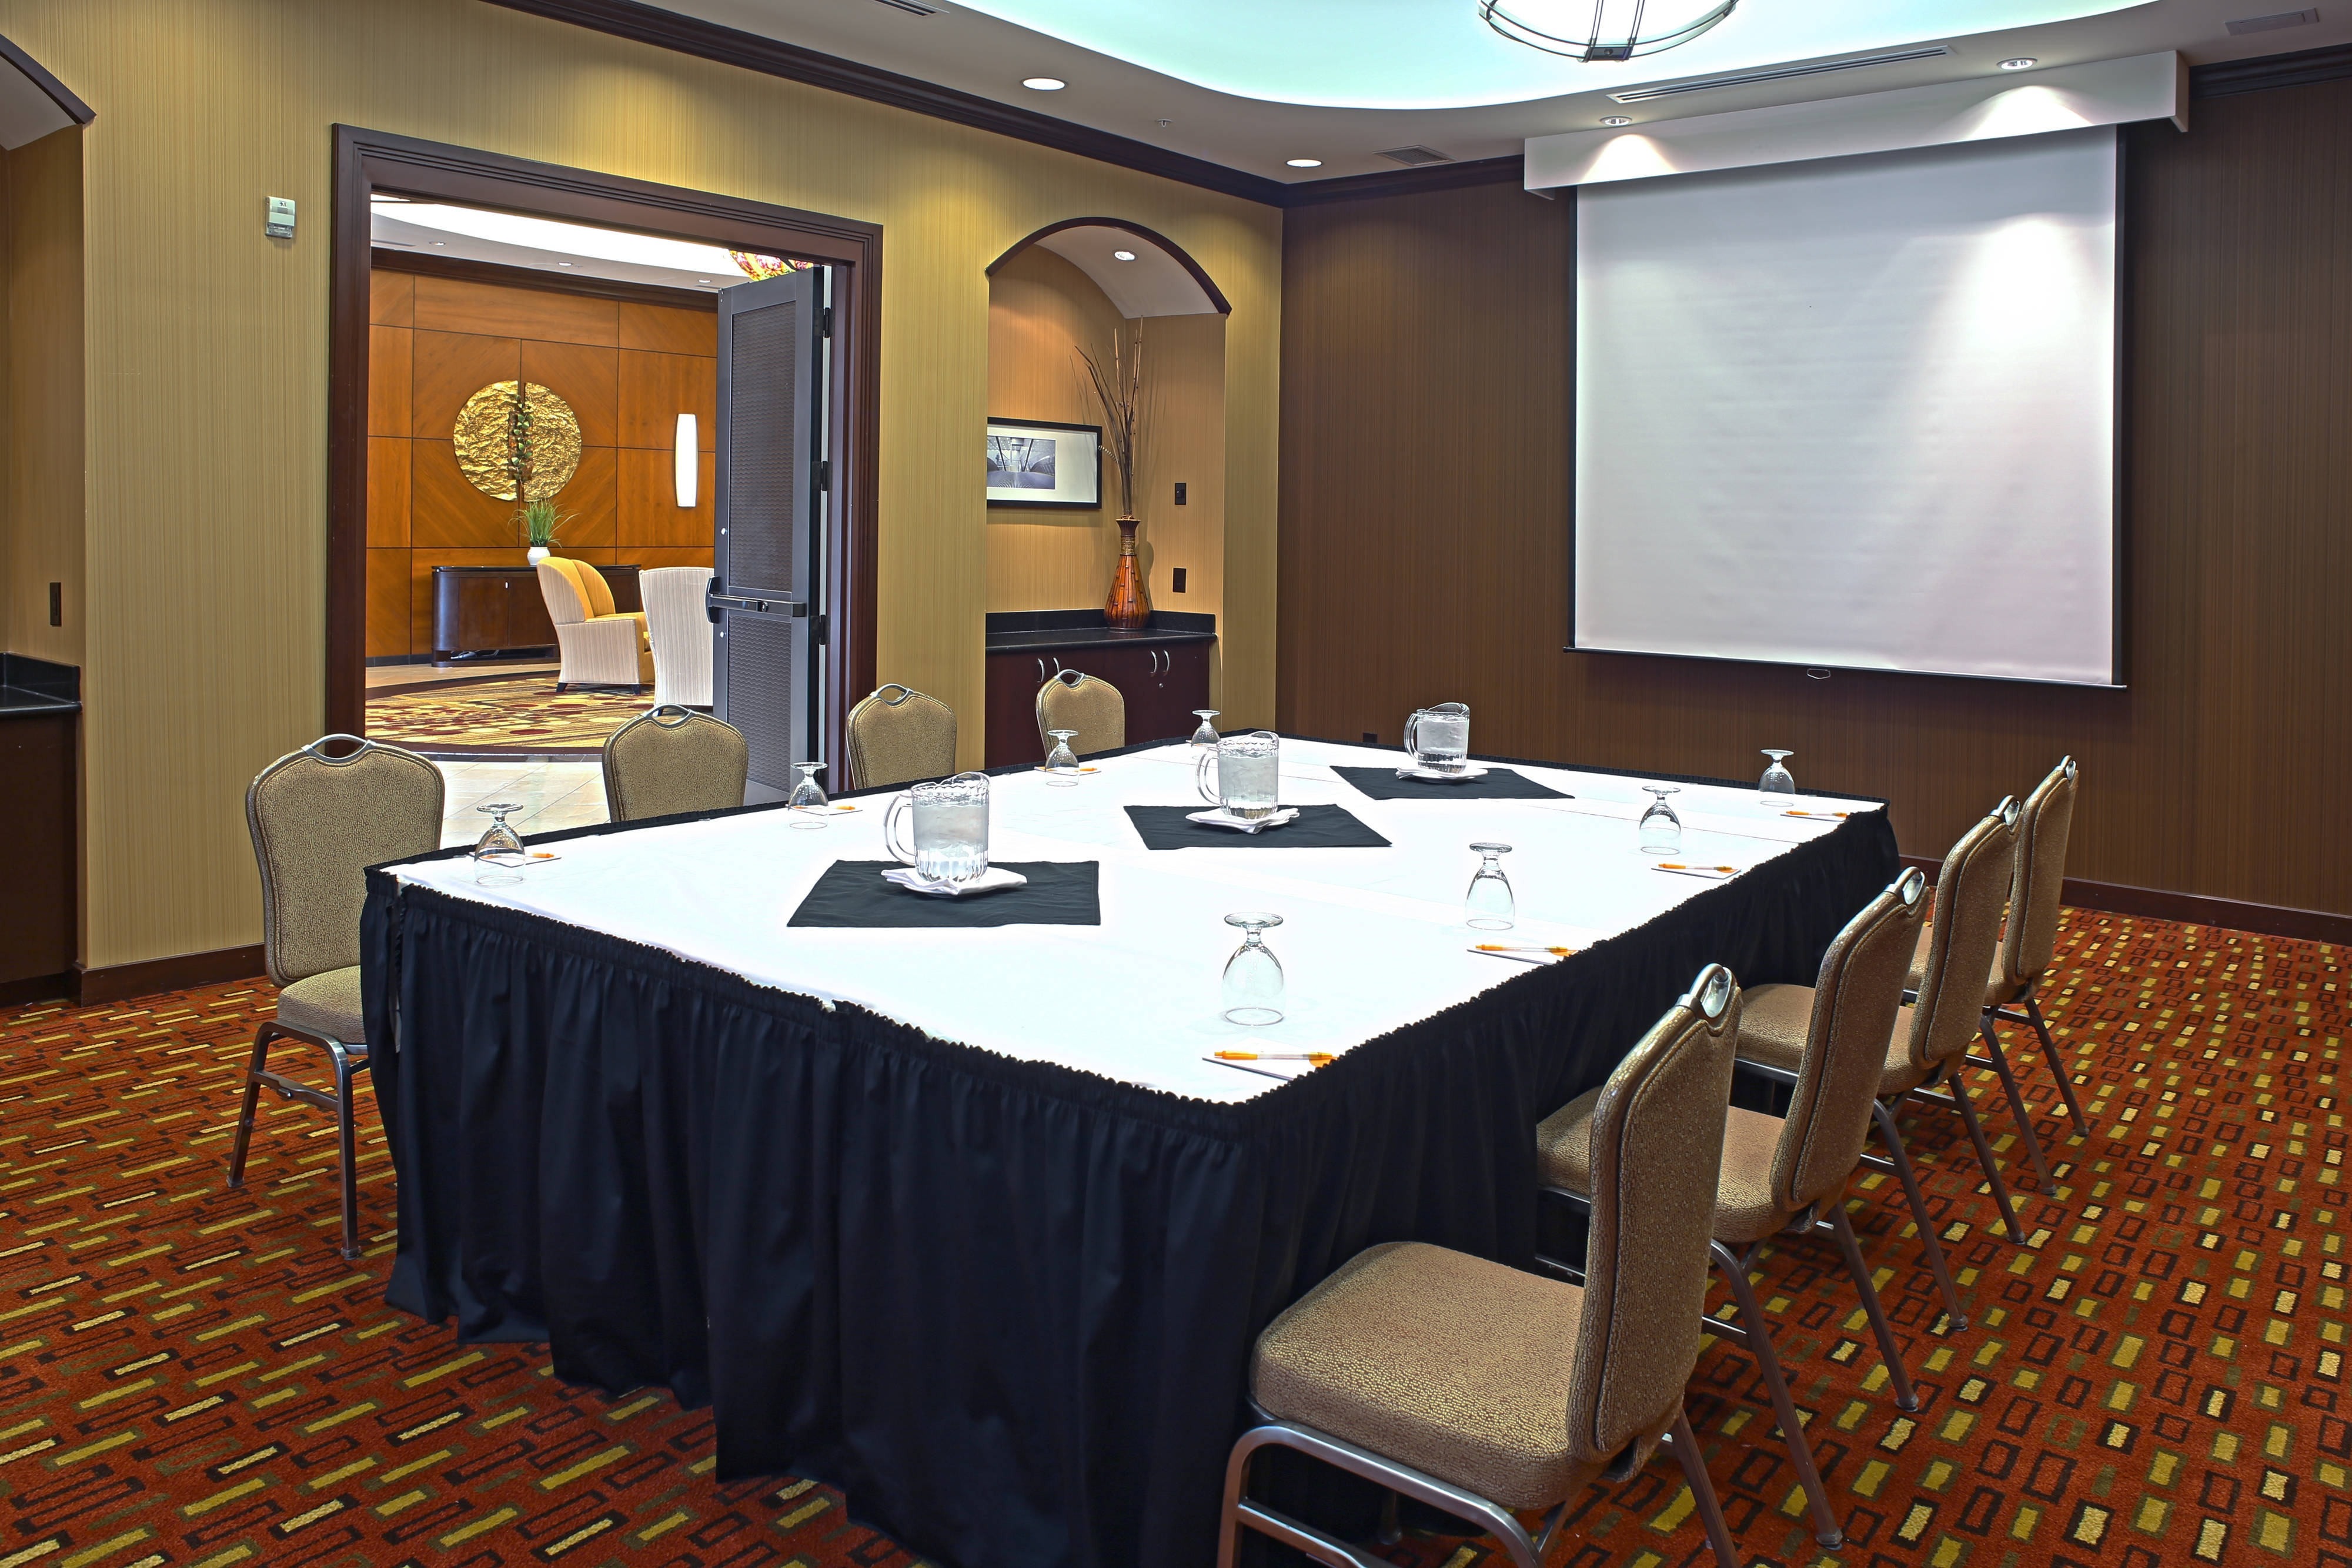 Dundurn Meeting Room – Conference Setup